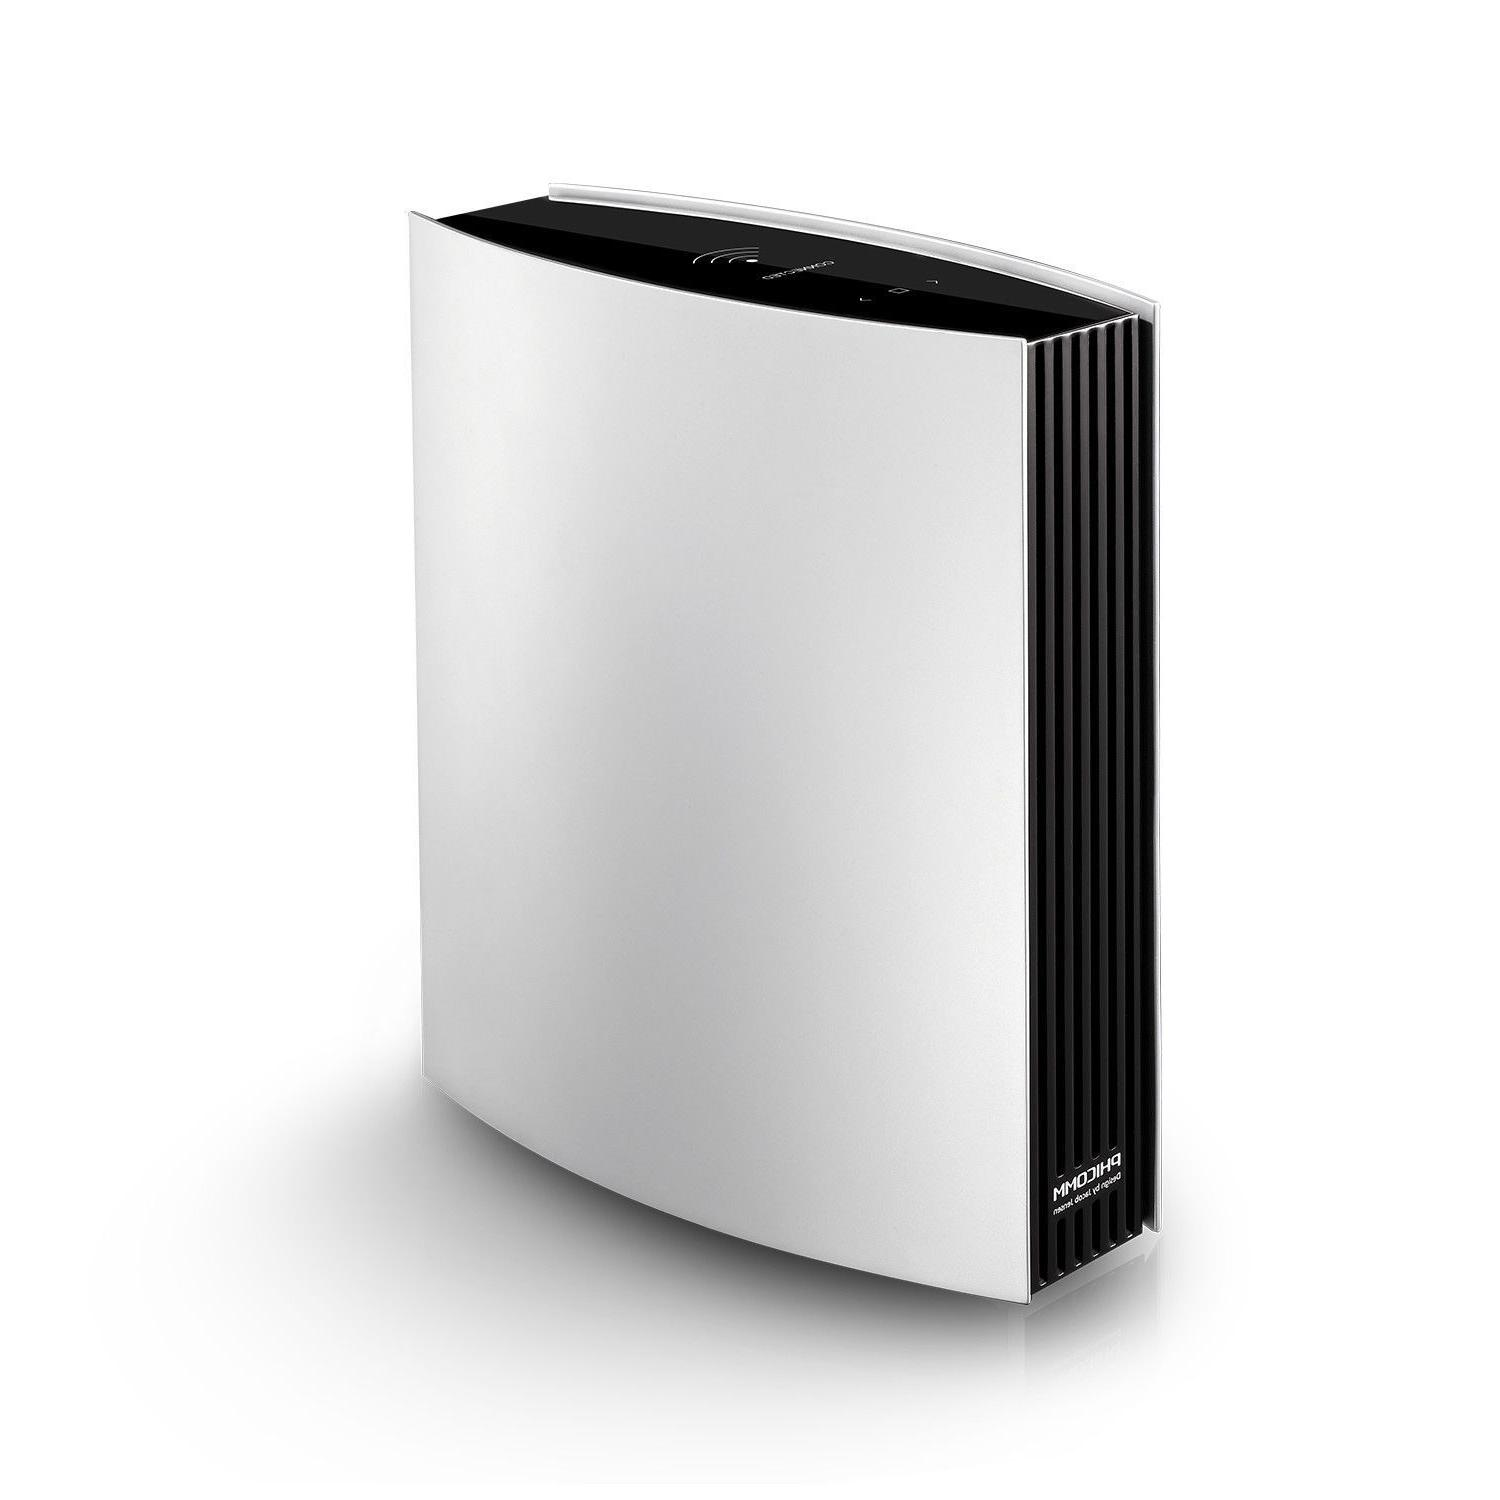 PHICOMM K3 AC3150 Dual Band Router Silver